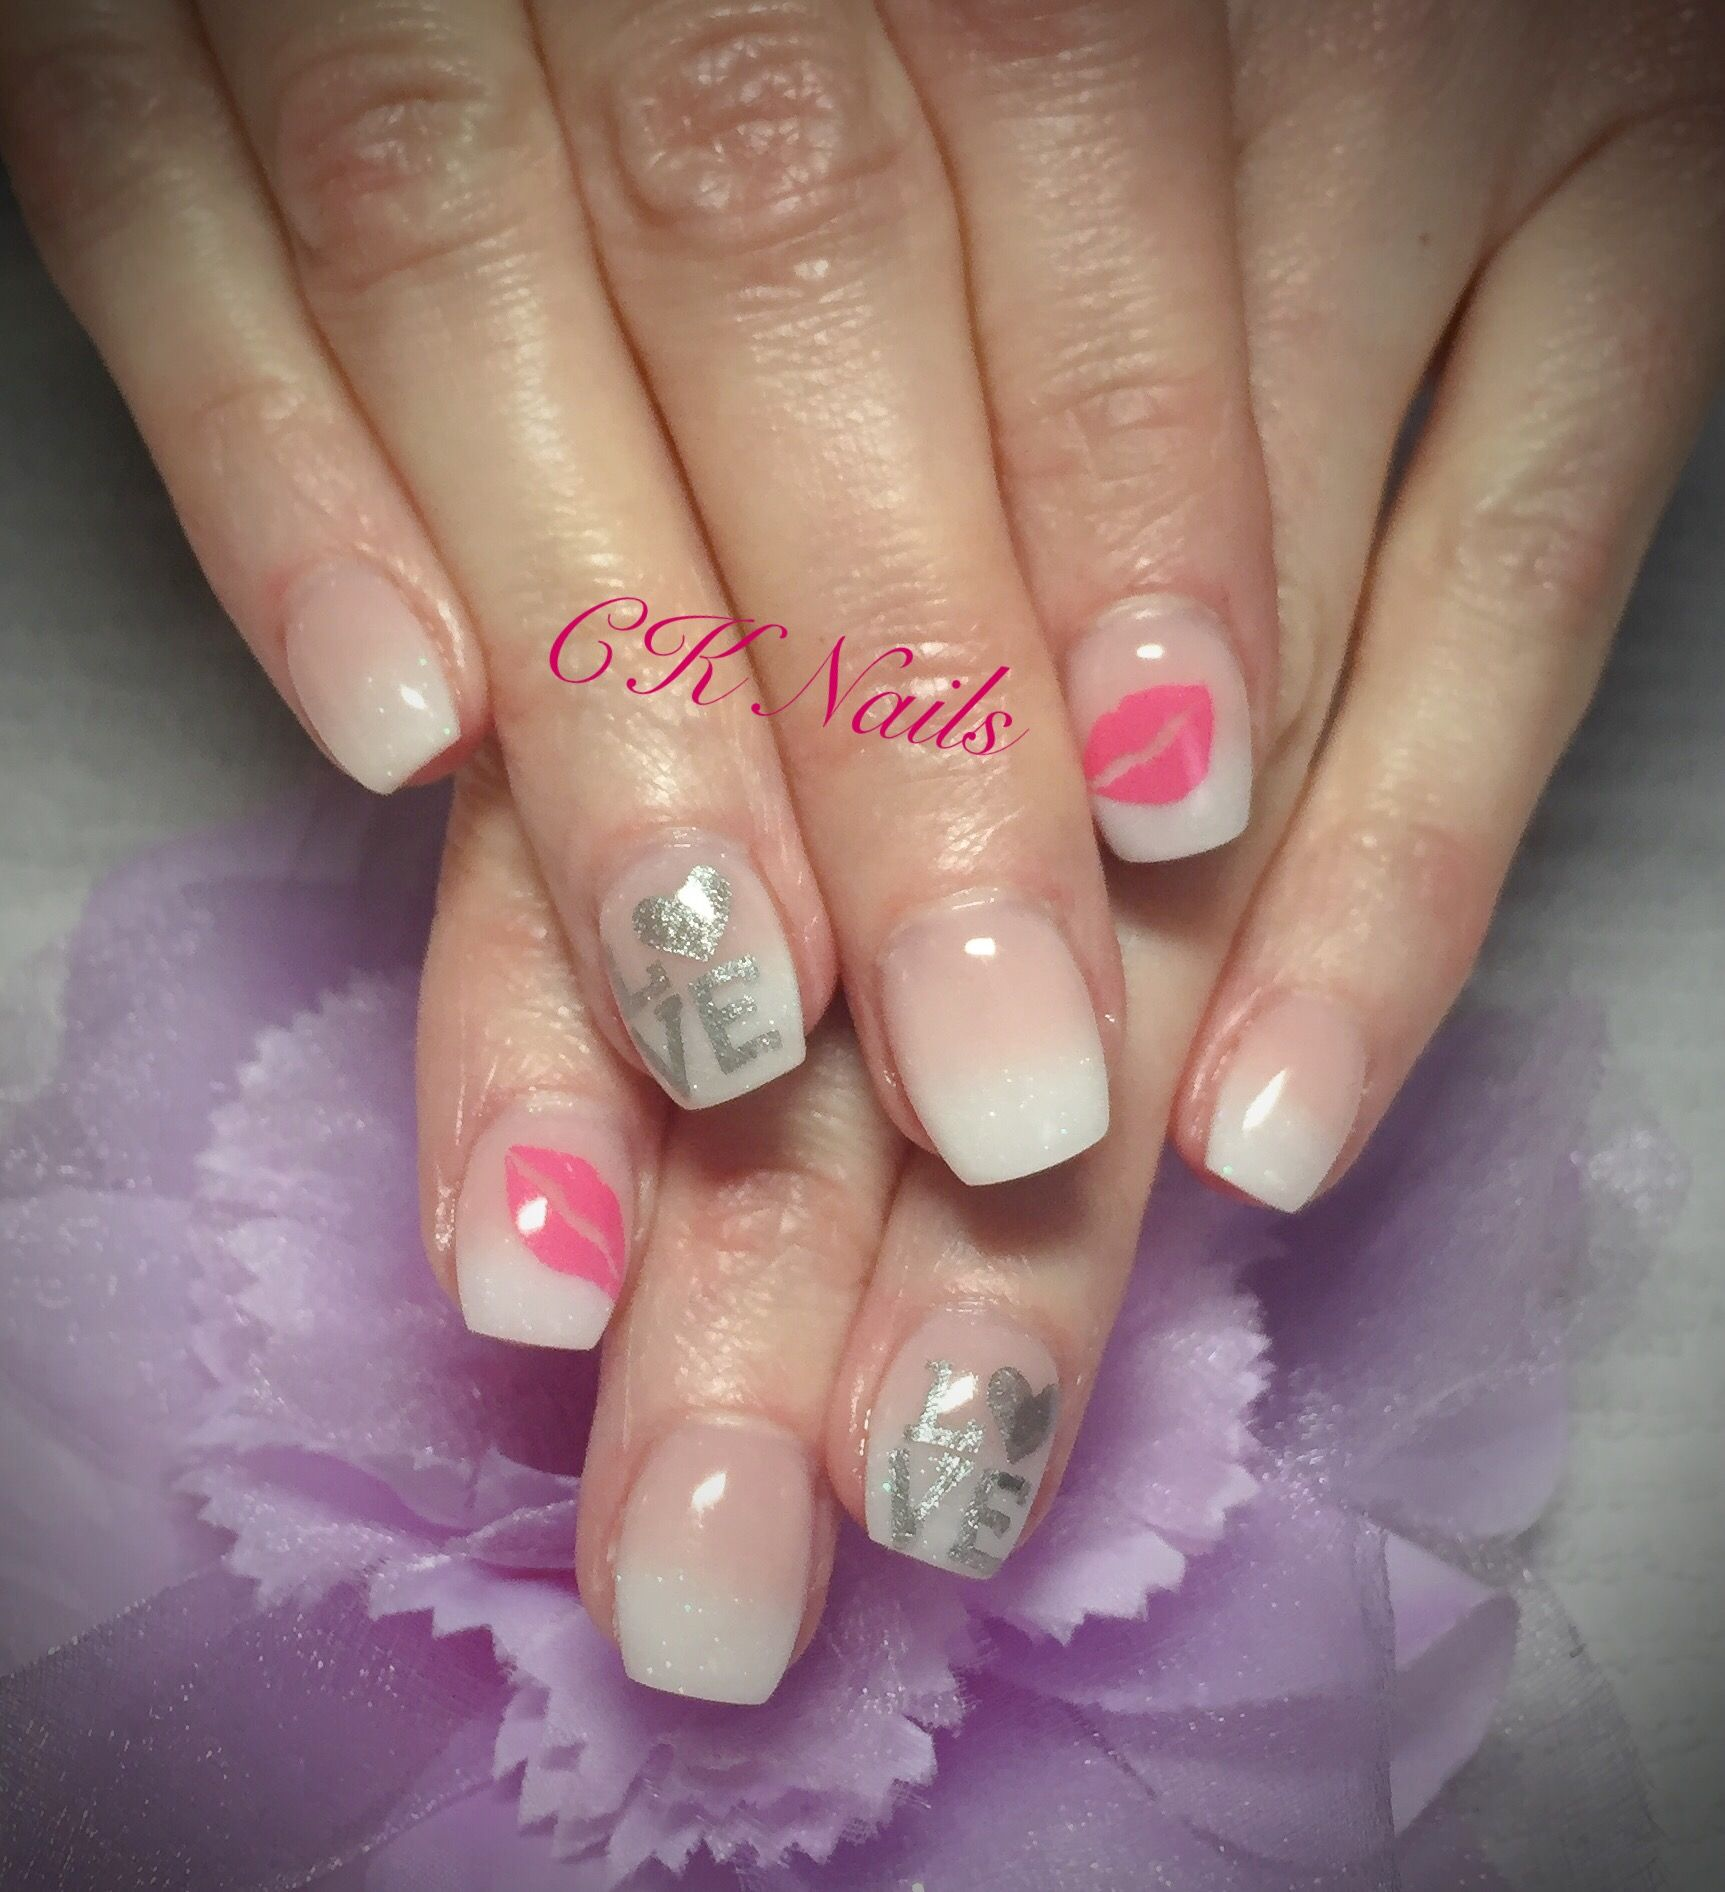 Ck Nails Valentine S Day Nails Love Kisses Nailart Stamps French Fade Nails French Ombre Nails Short Nails Ta Nail Shapes French Fade Nails Faded Nails